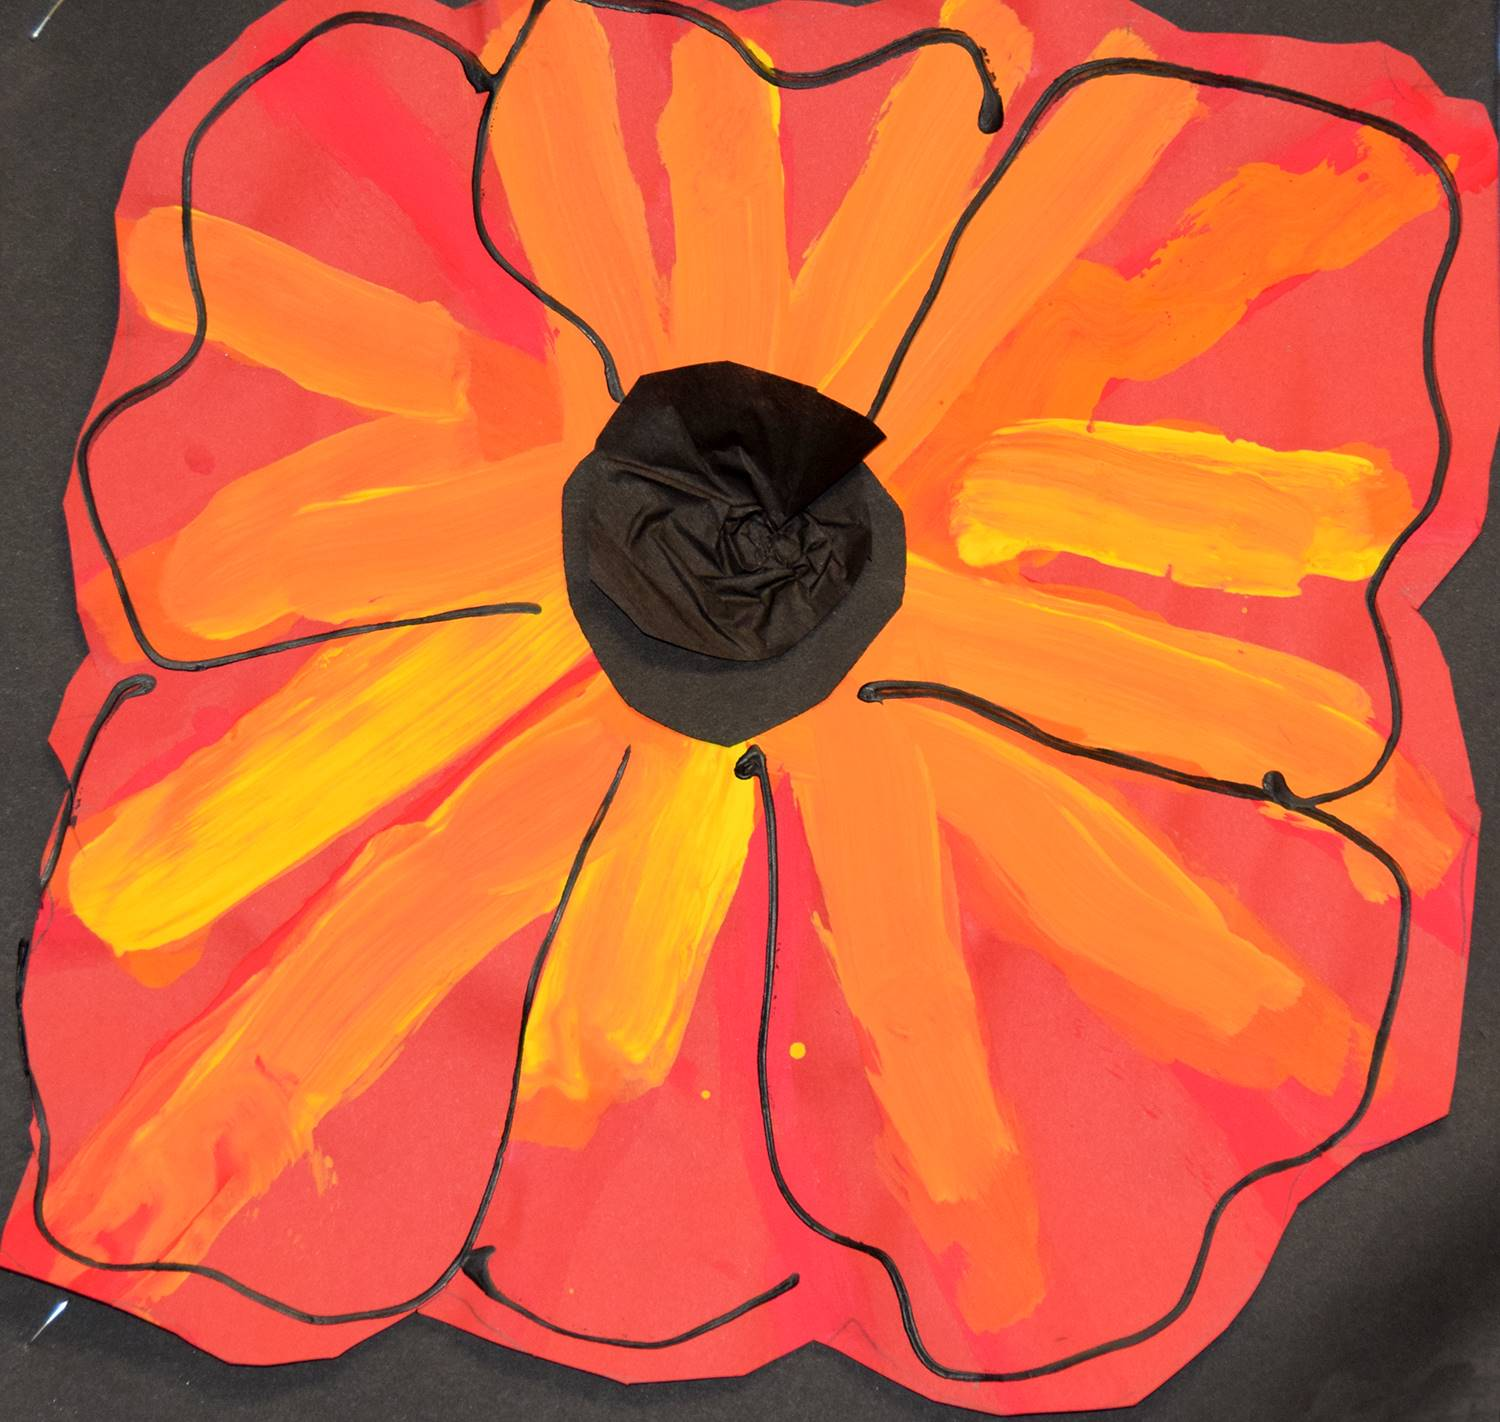 An orange and red poppy flower on black background by Gavin, a Clayton Avenue Elementary student.